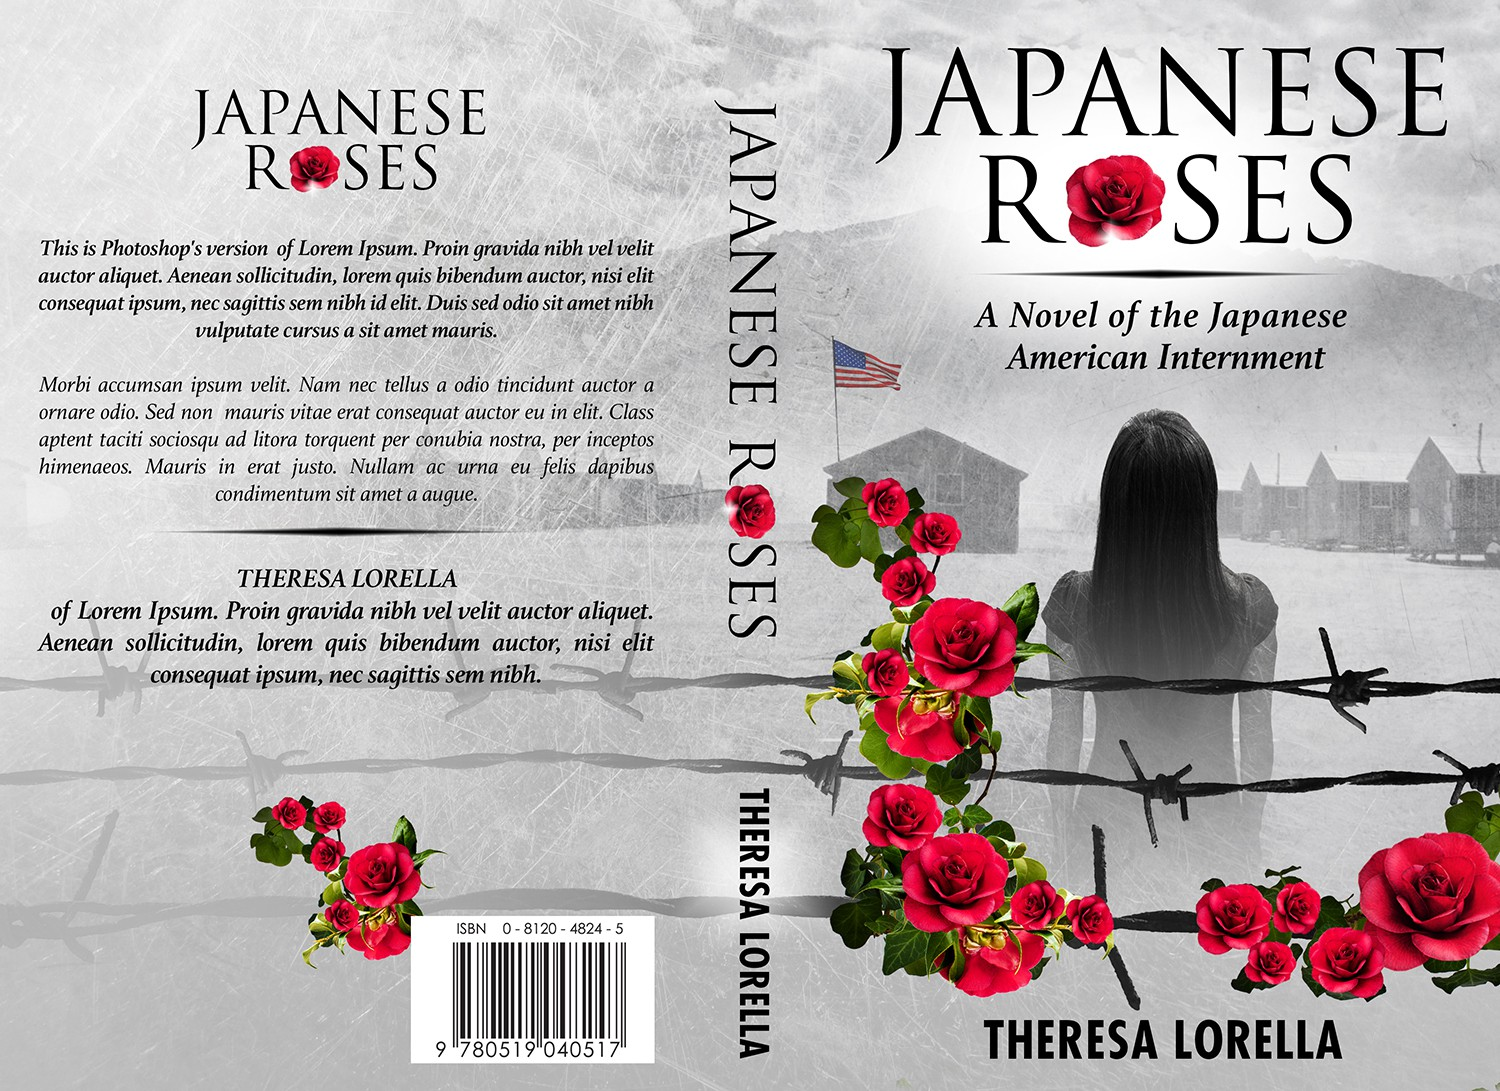 Create the next book or magazine cover for Japanese Roses by Theresa Lorella